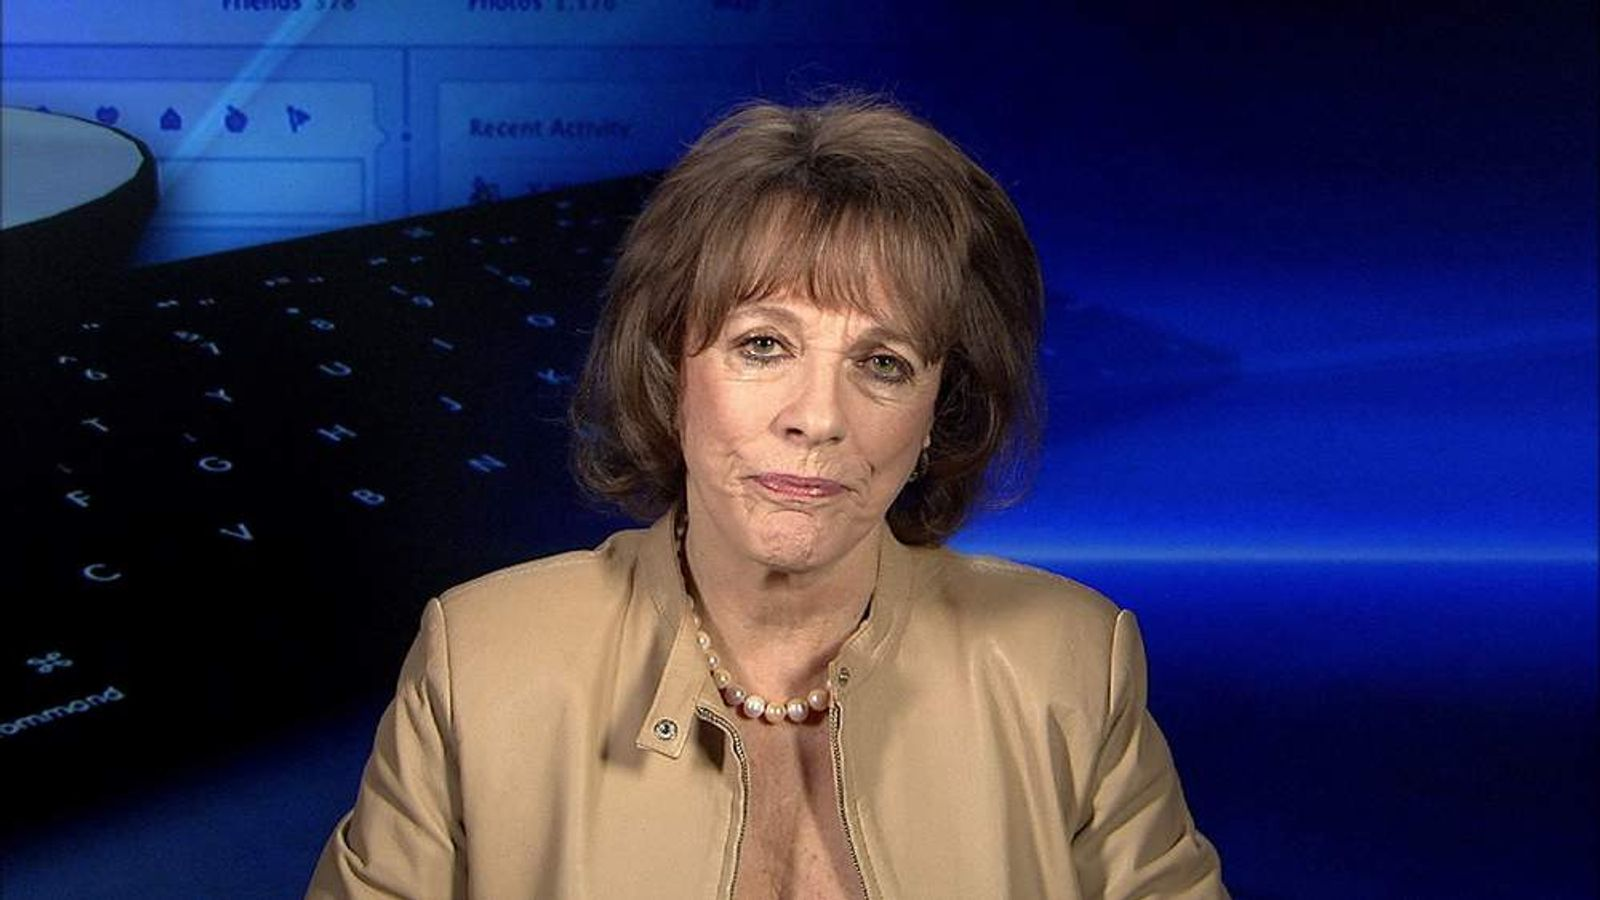 080114 SUNRISE ESTER RANTZEN BULLYING